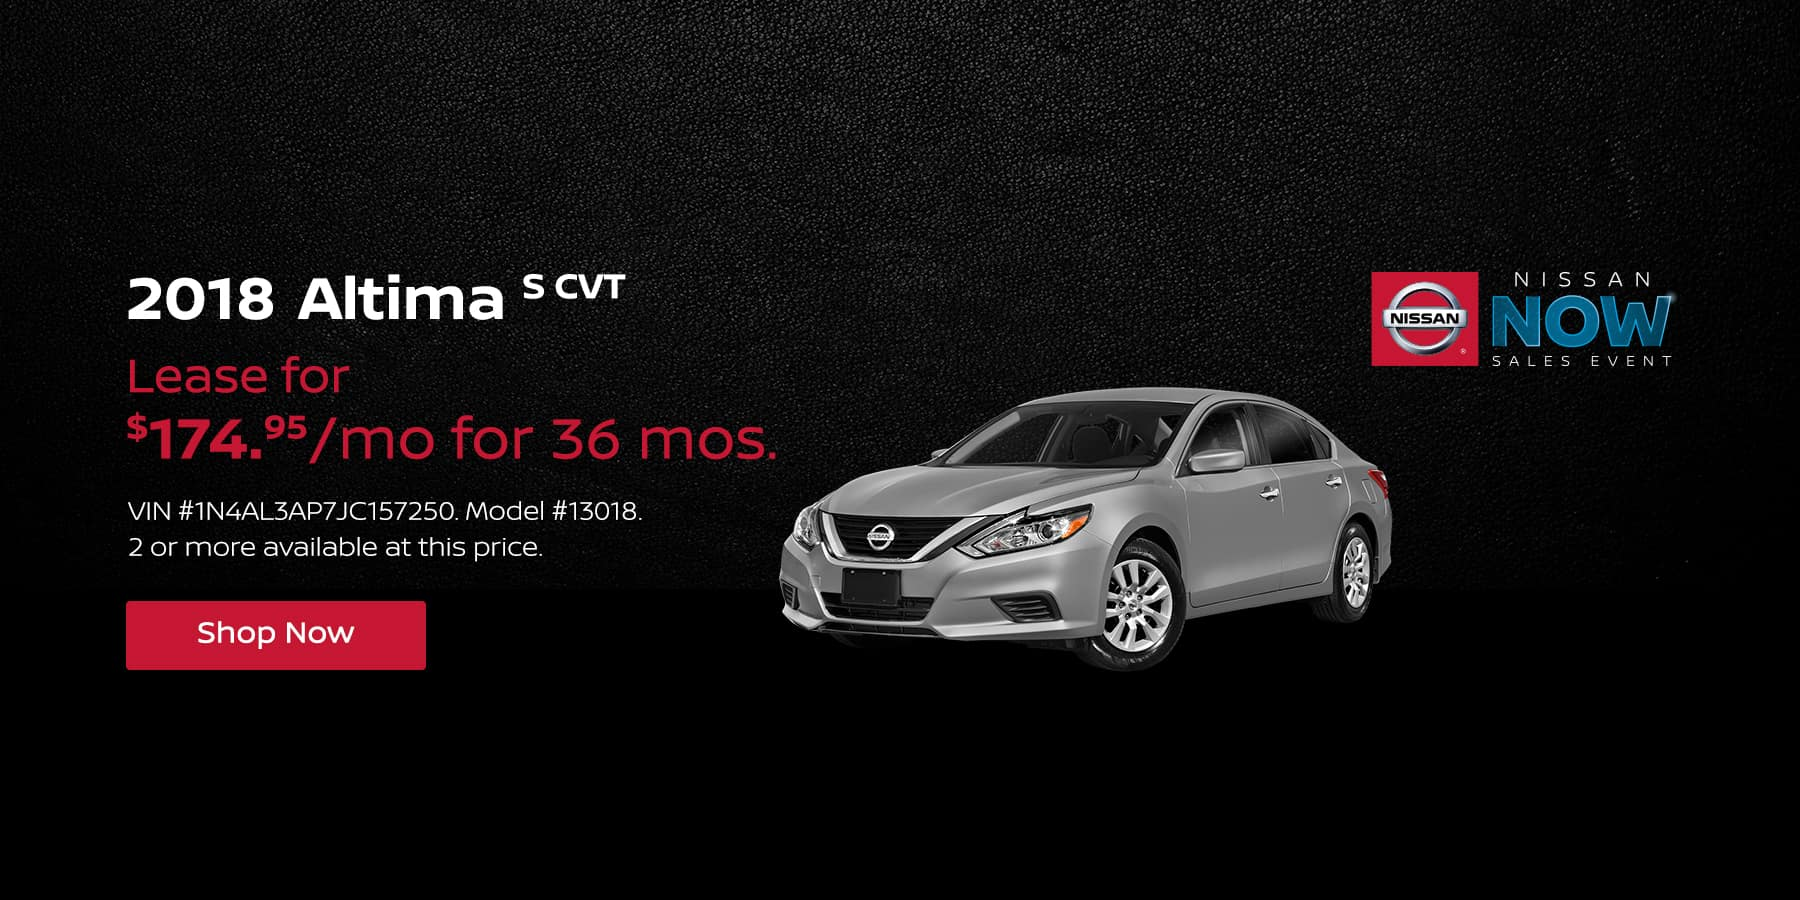 Jeffrey Nissan February Altima Offer